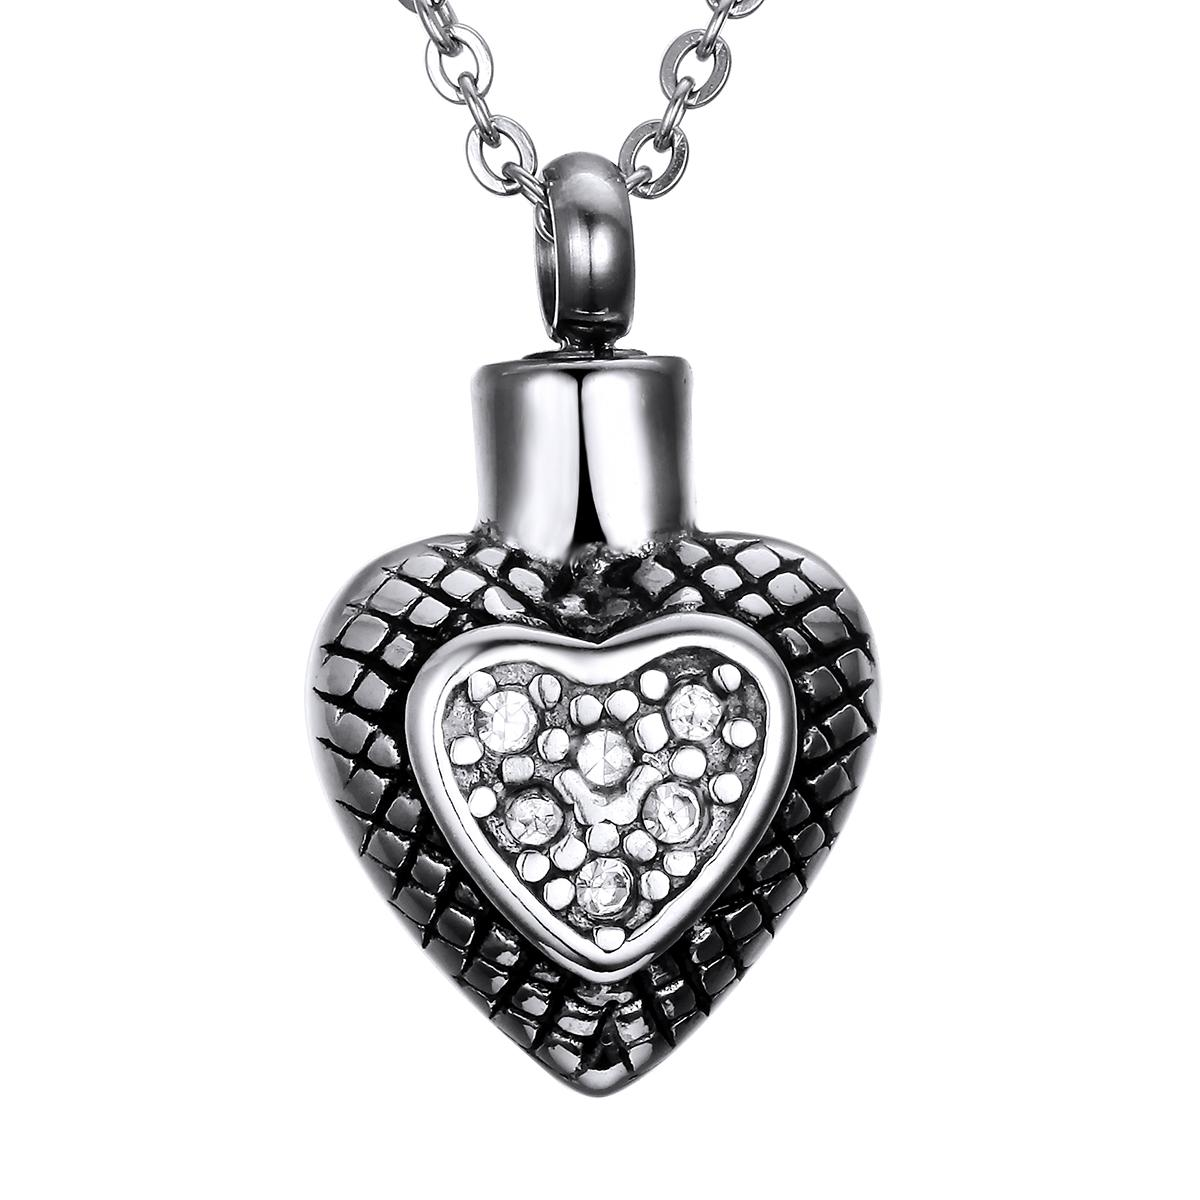 Lily Cremation Jewelry Urn Retro diamond heart shaped Memorial Pendant Ashes Necklace Keepsake & Chain Necklace with a Gift Bag